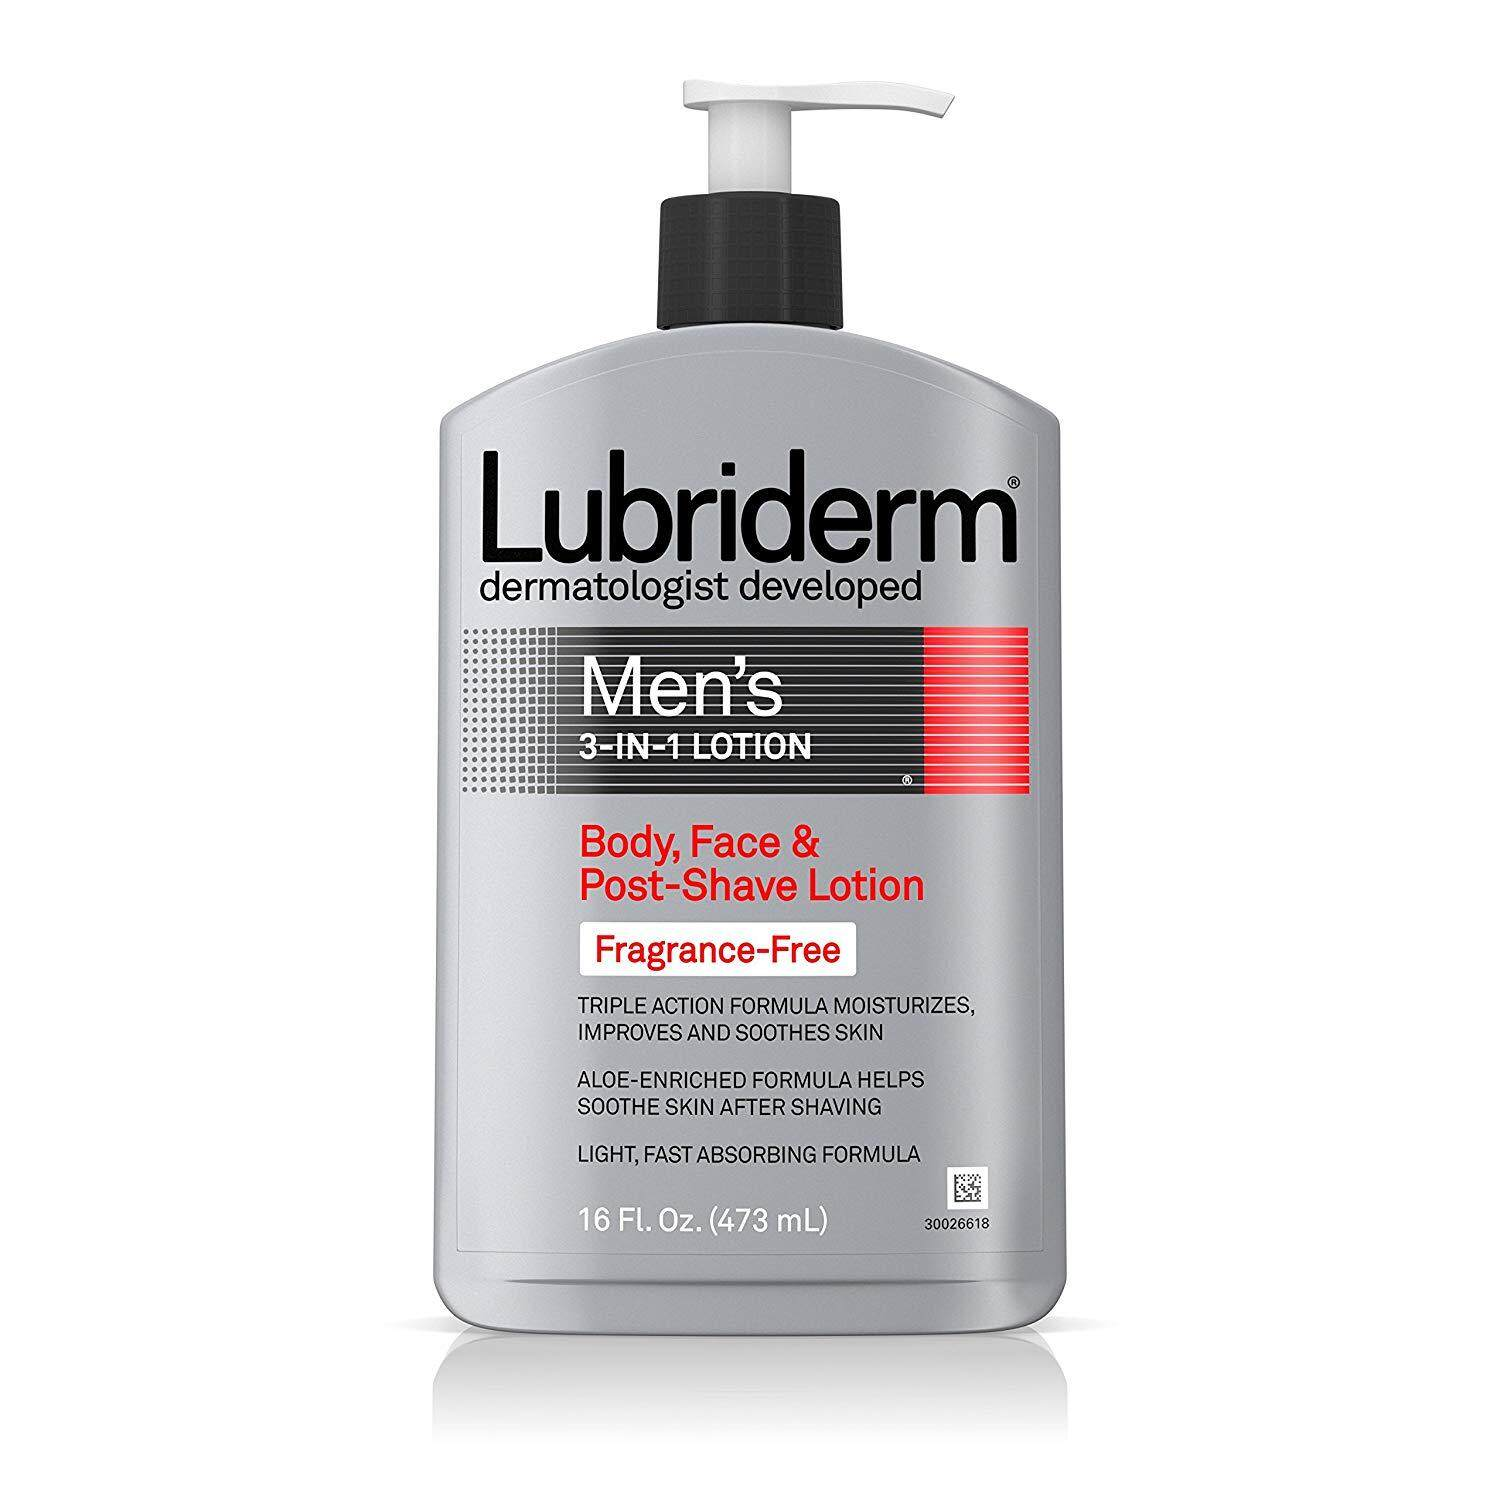 Lubriderm Men 3-In-1 Unscented Lotion Enriched with Soothing Aloe for Body and Face, Non-Greasy Post Shave Moisturizer, Fragrance-Free, 16 fl. oz